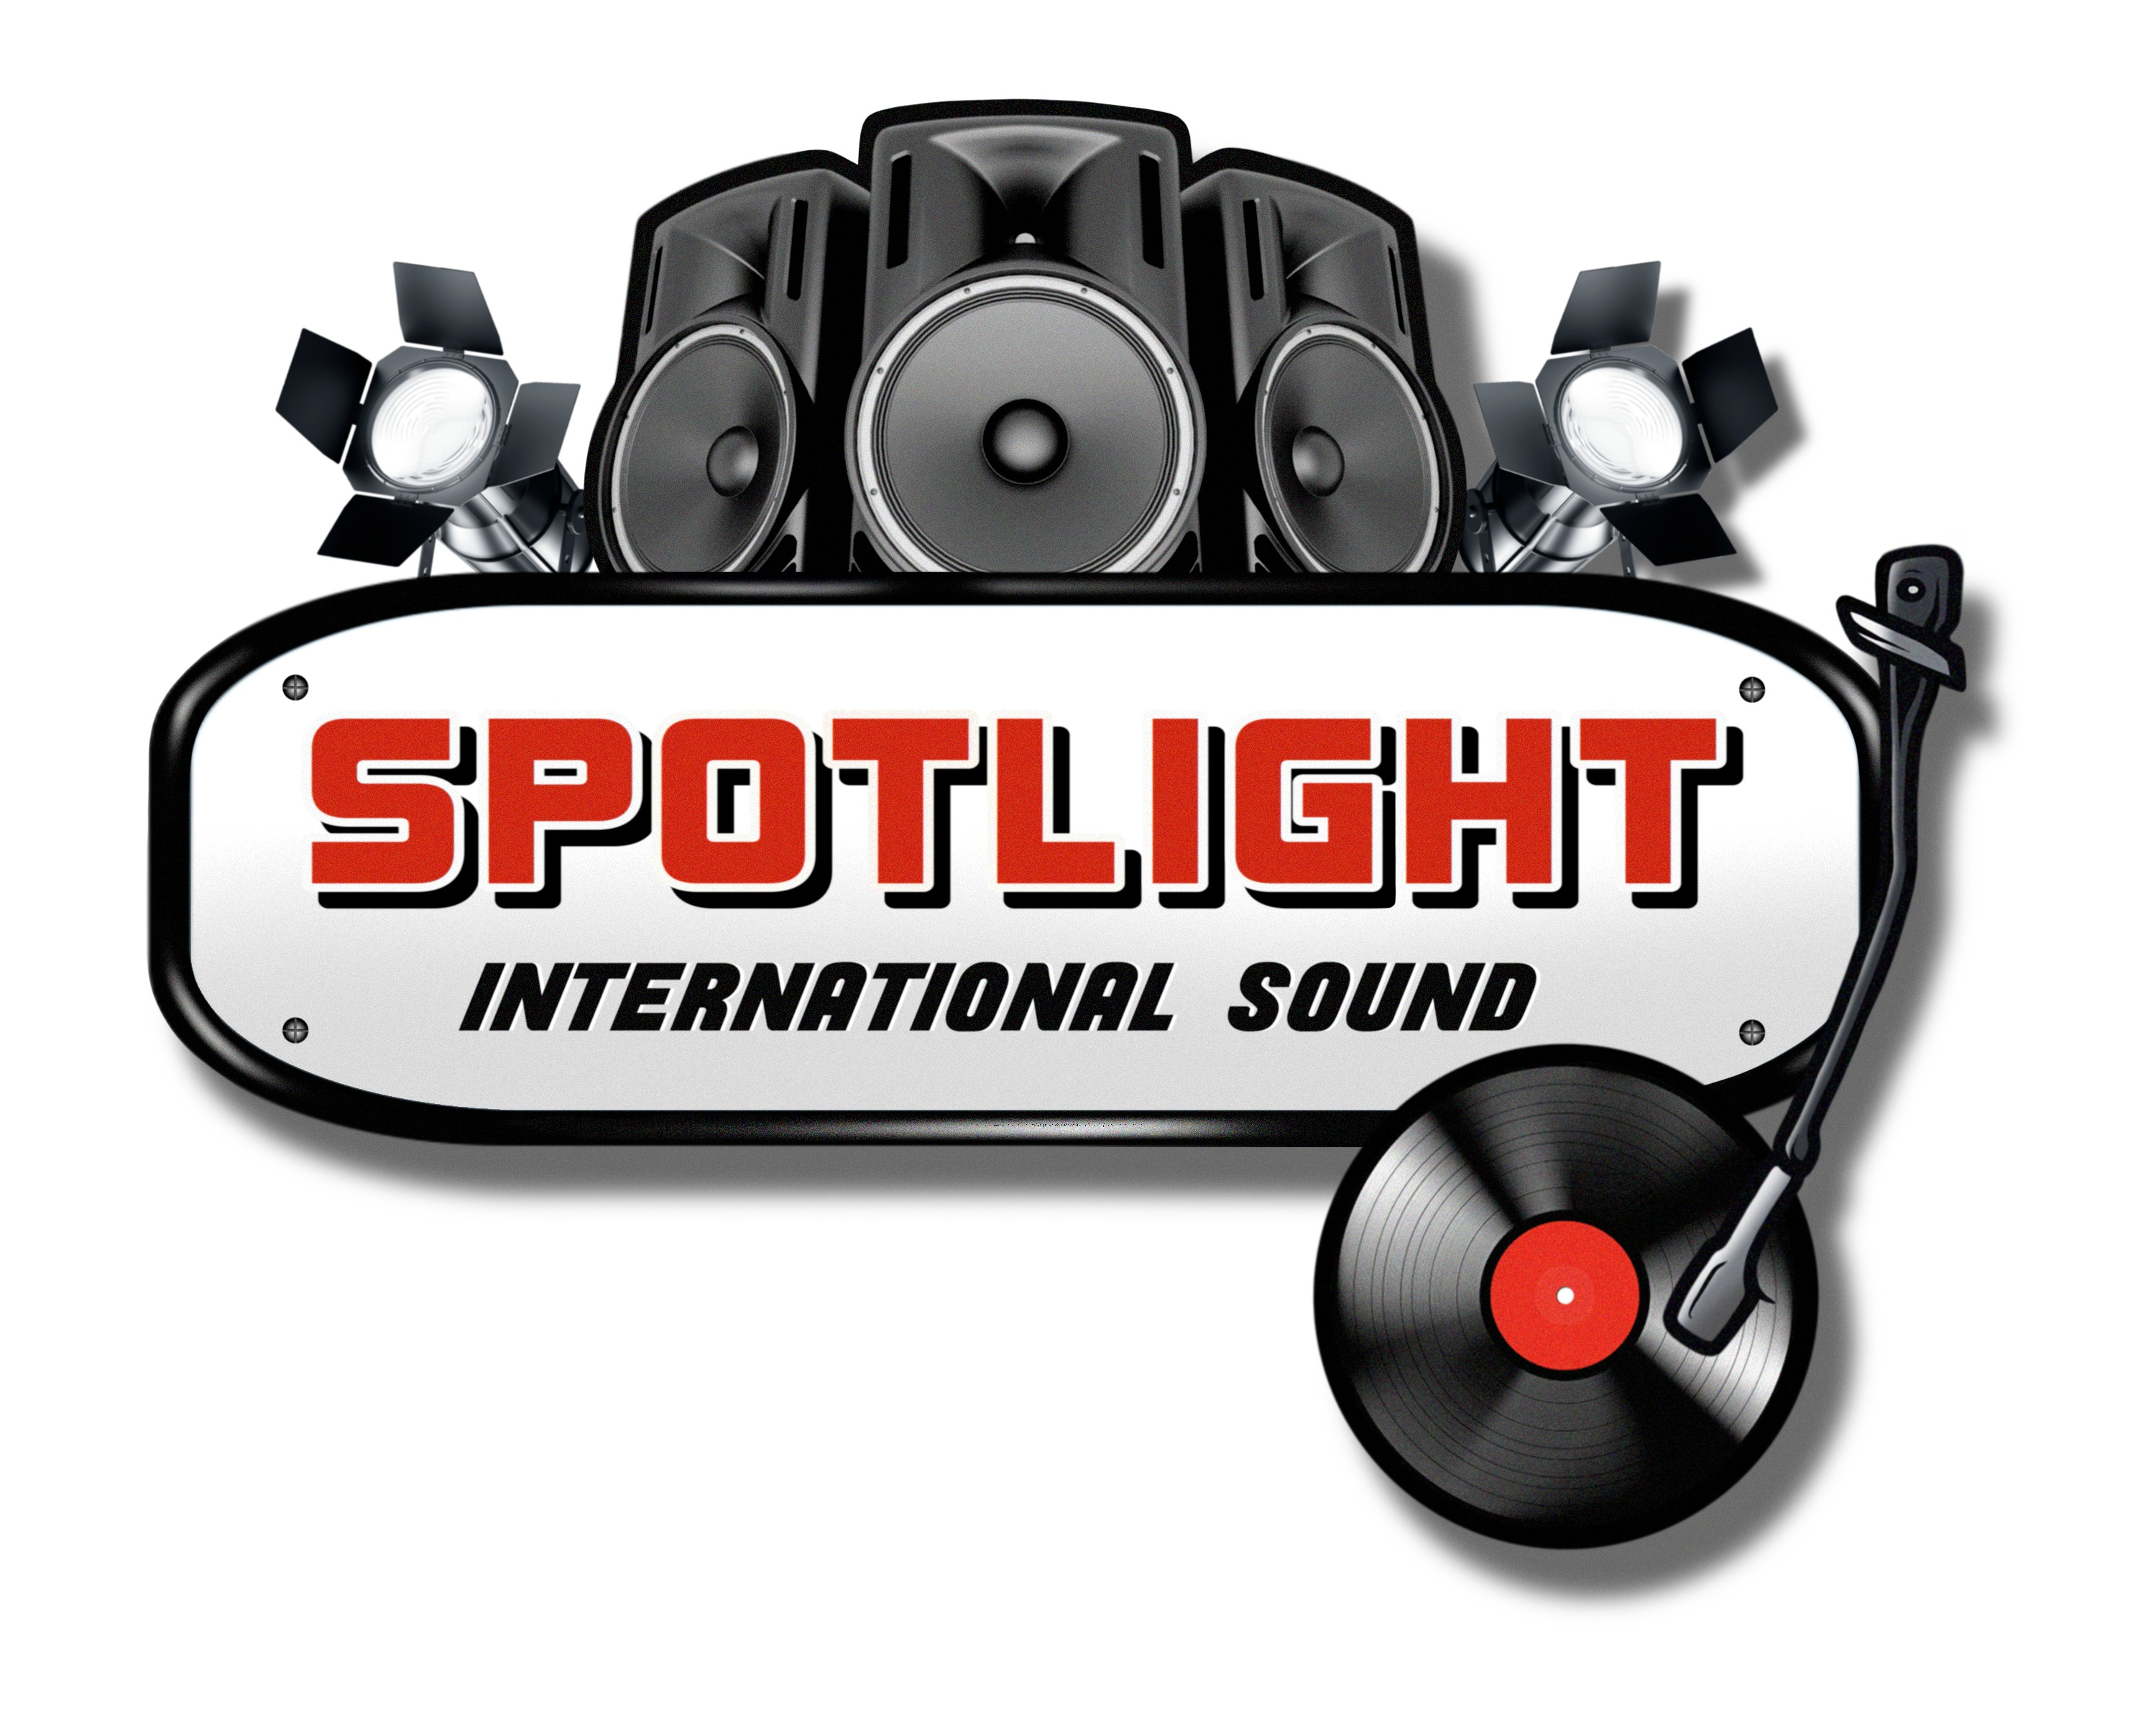 SPOTLIGHT INTL SOUND